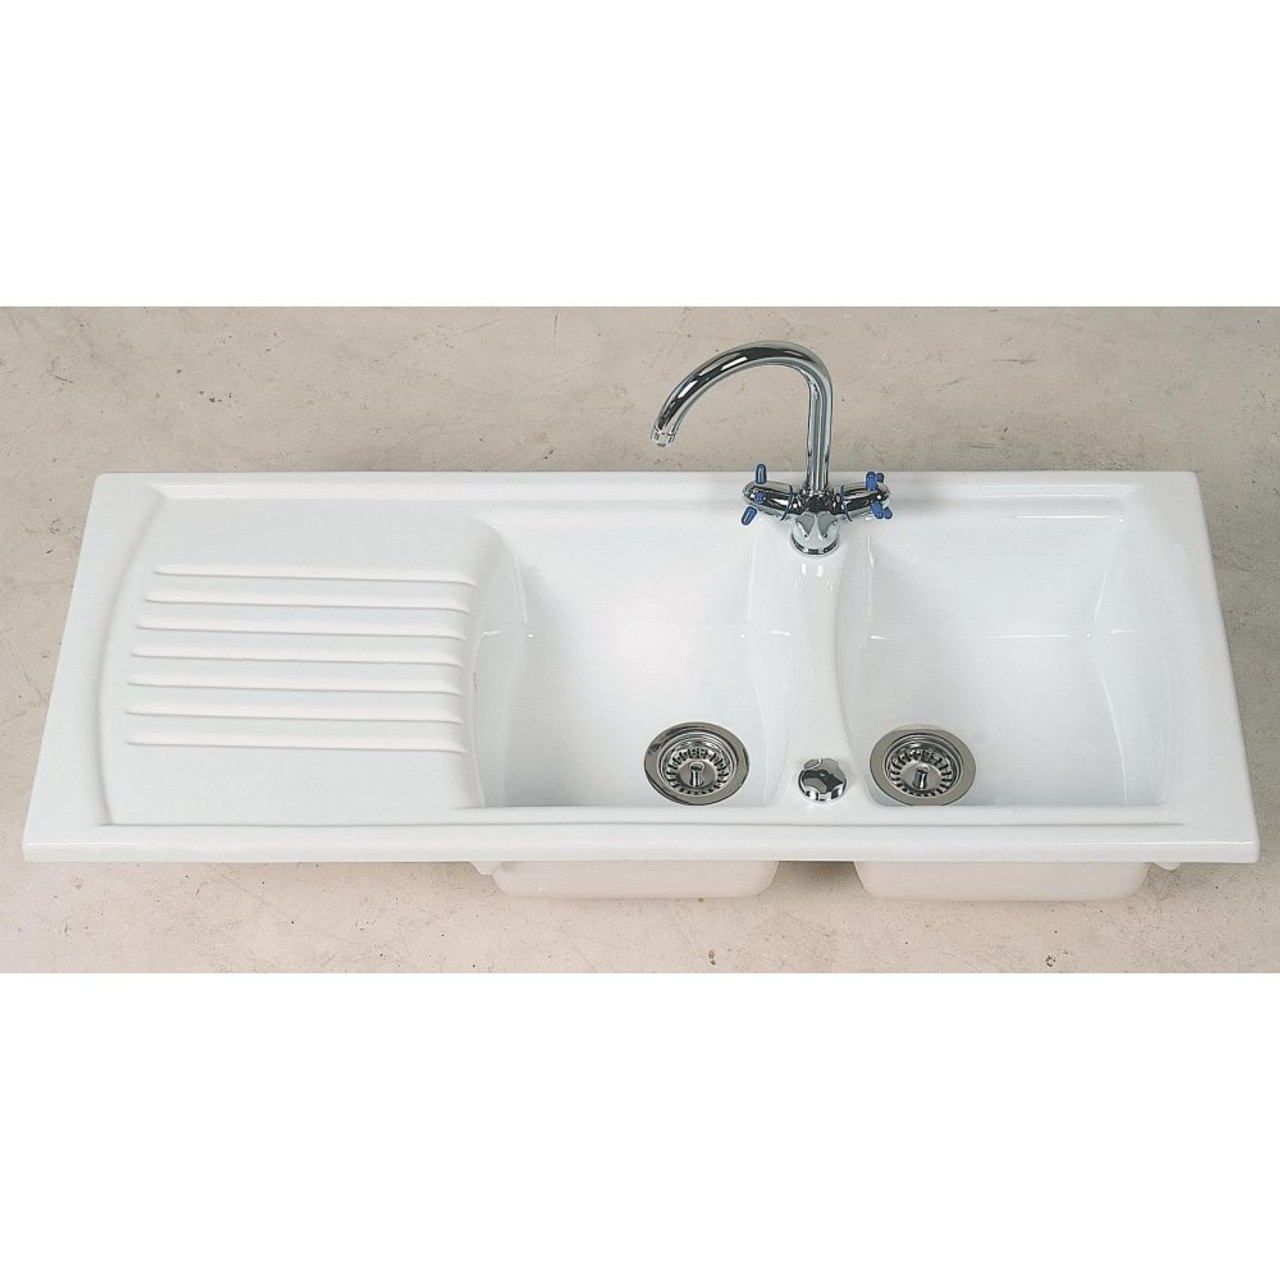 kitchen sinks double drainer denby sonnet bowl sink sinks 6069